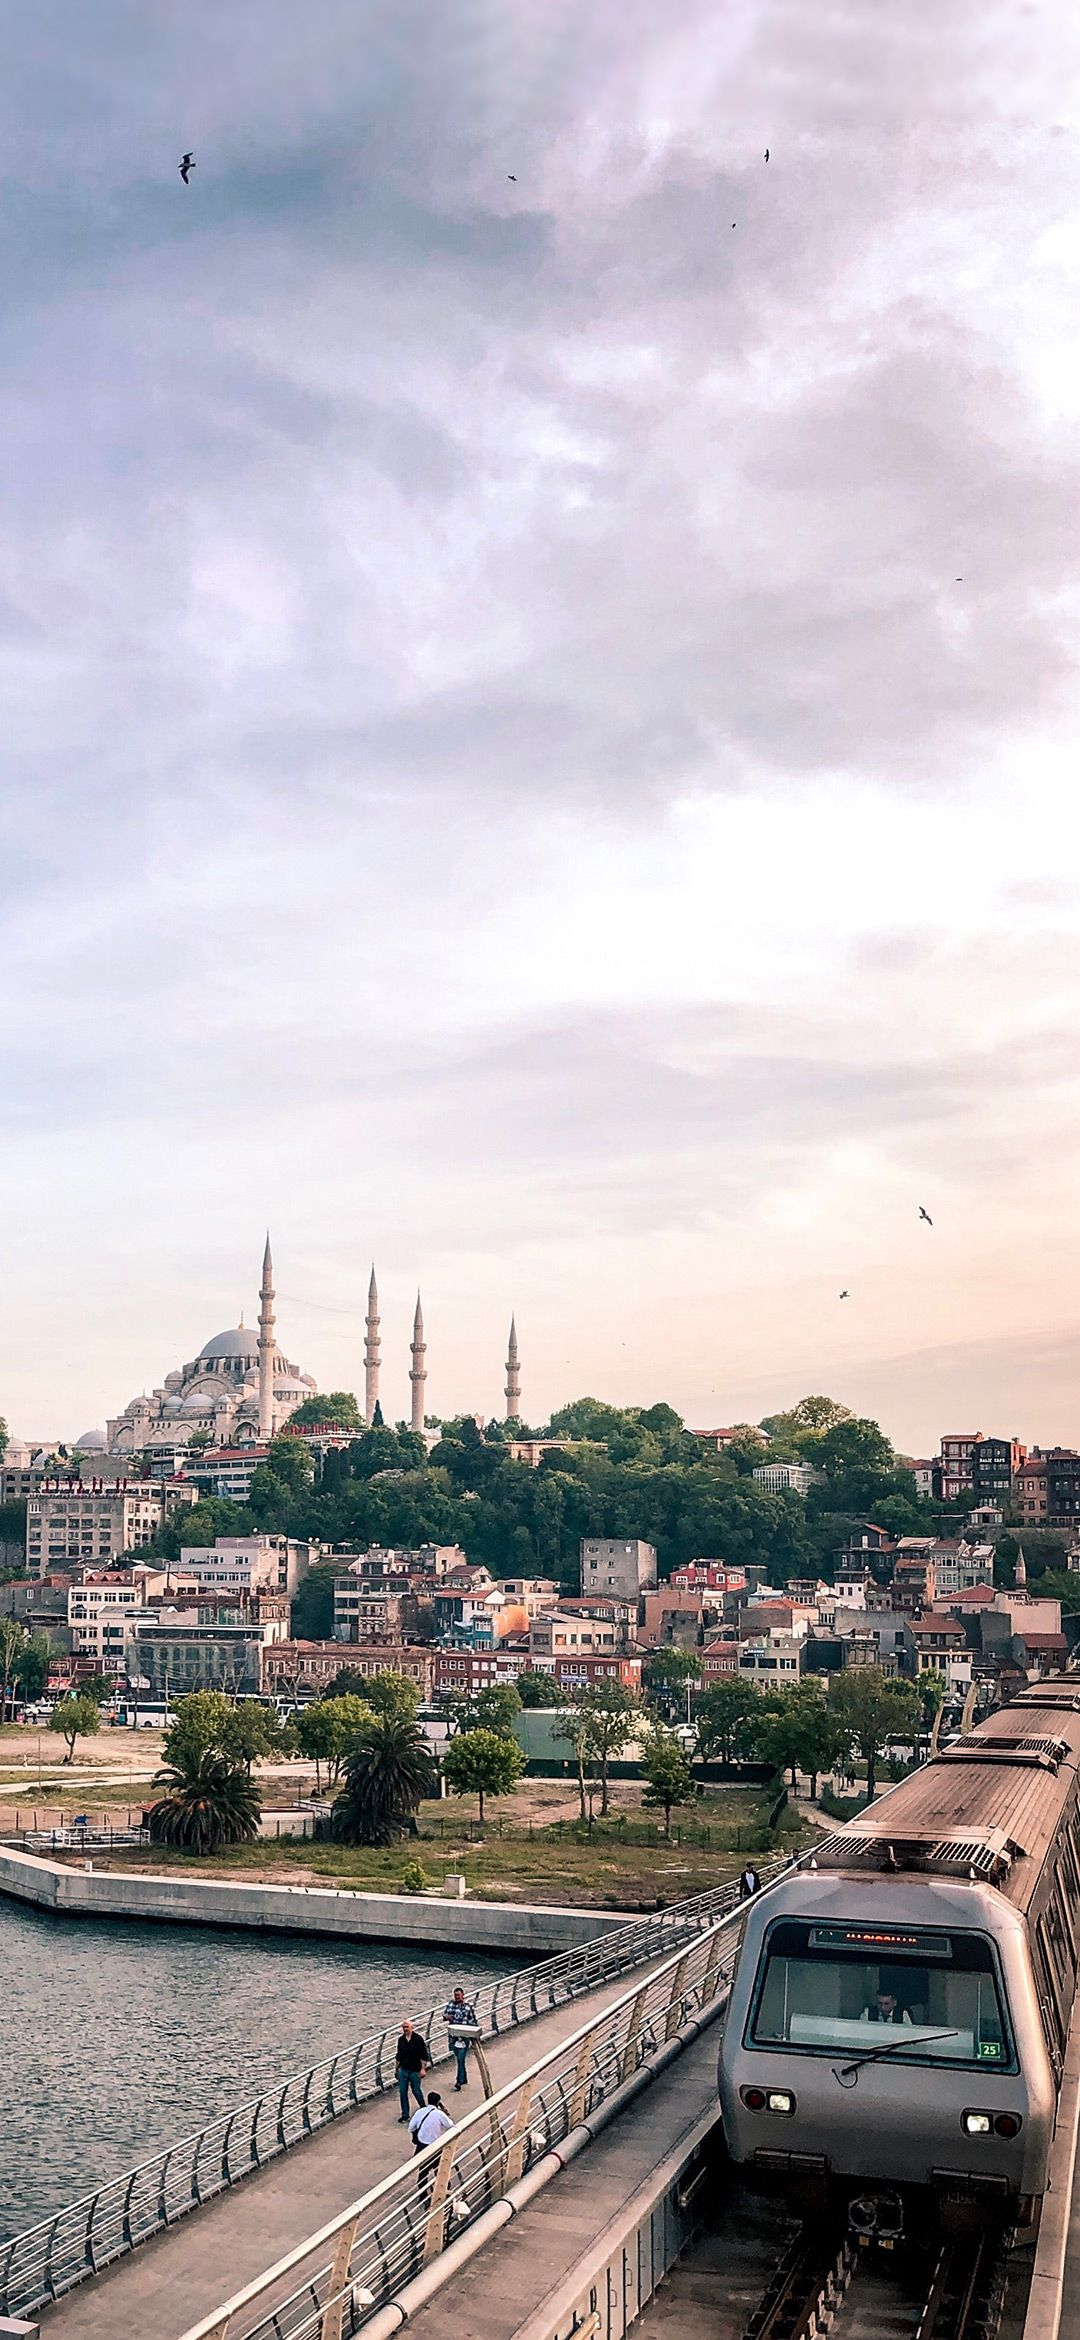 Suleymaniye Mosque In Istanbul City Wallpaper And Other Beautiful High Quality Hd Islamic Wallpapers On Islamwa In 2020 City Wallpaper Istanbul City Islamic Wallpaper